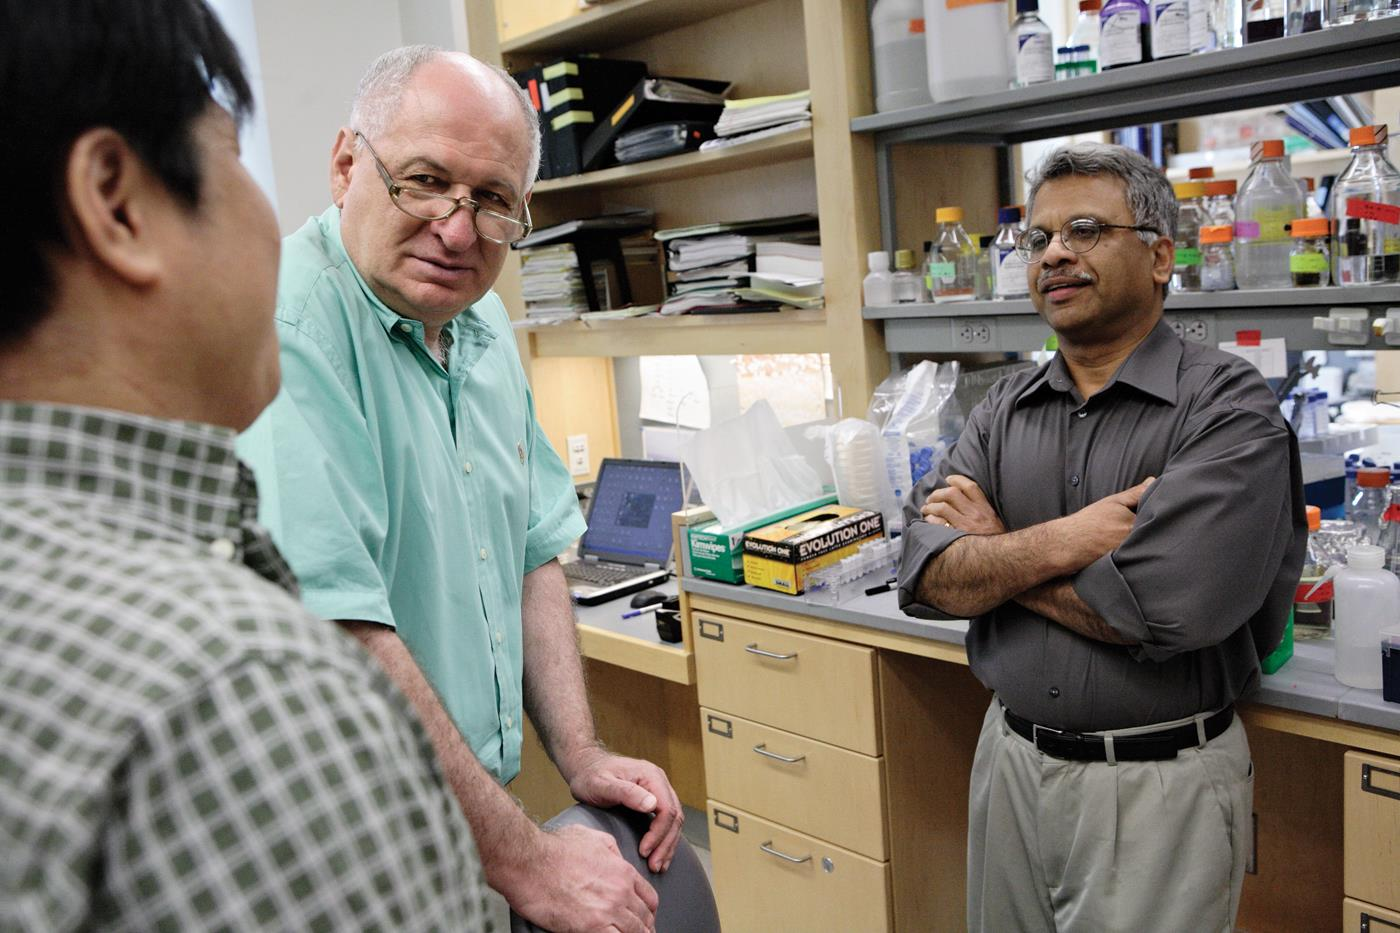 Schlessinger confers with members of his lab team